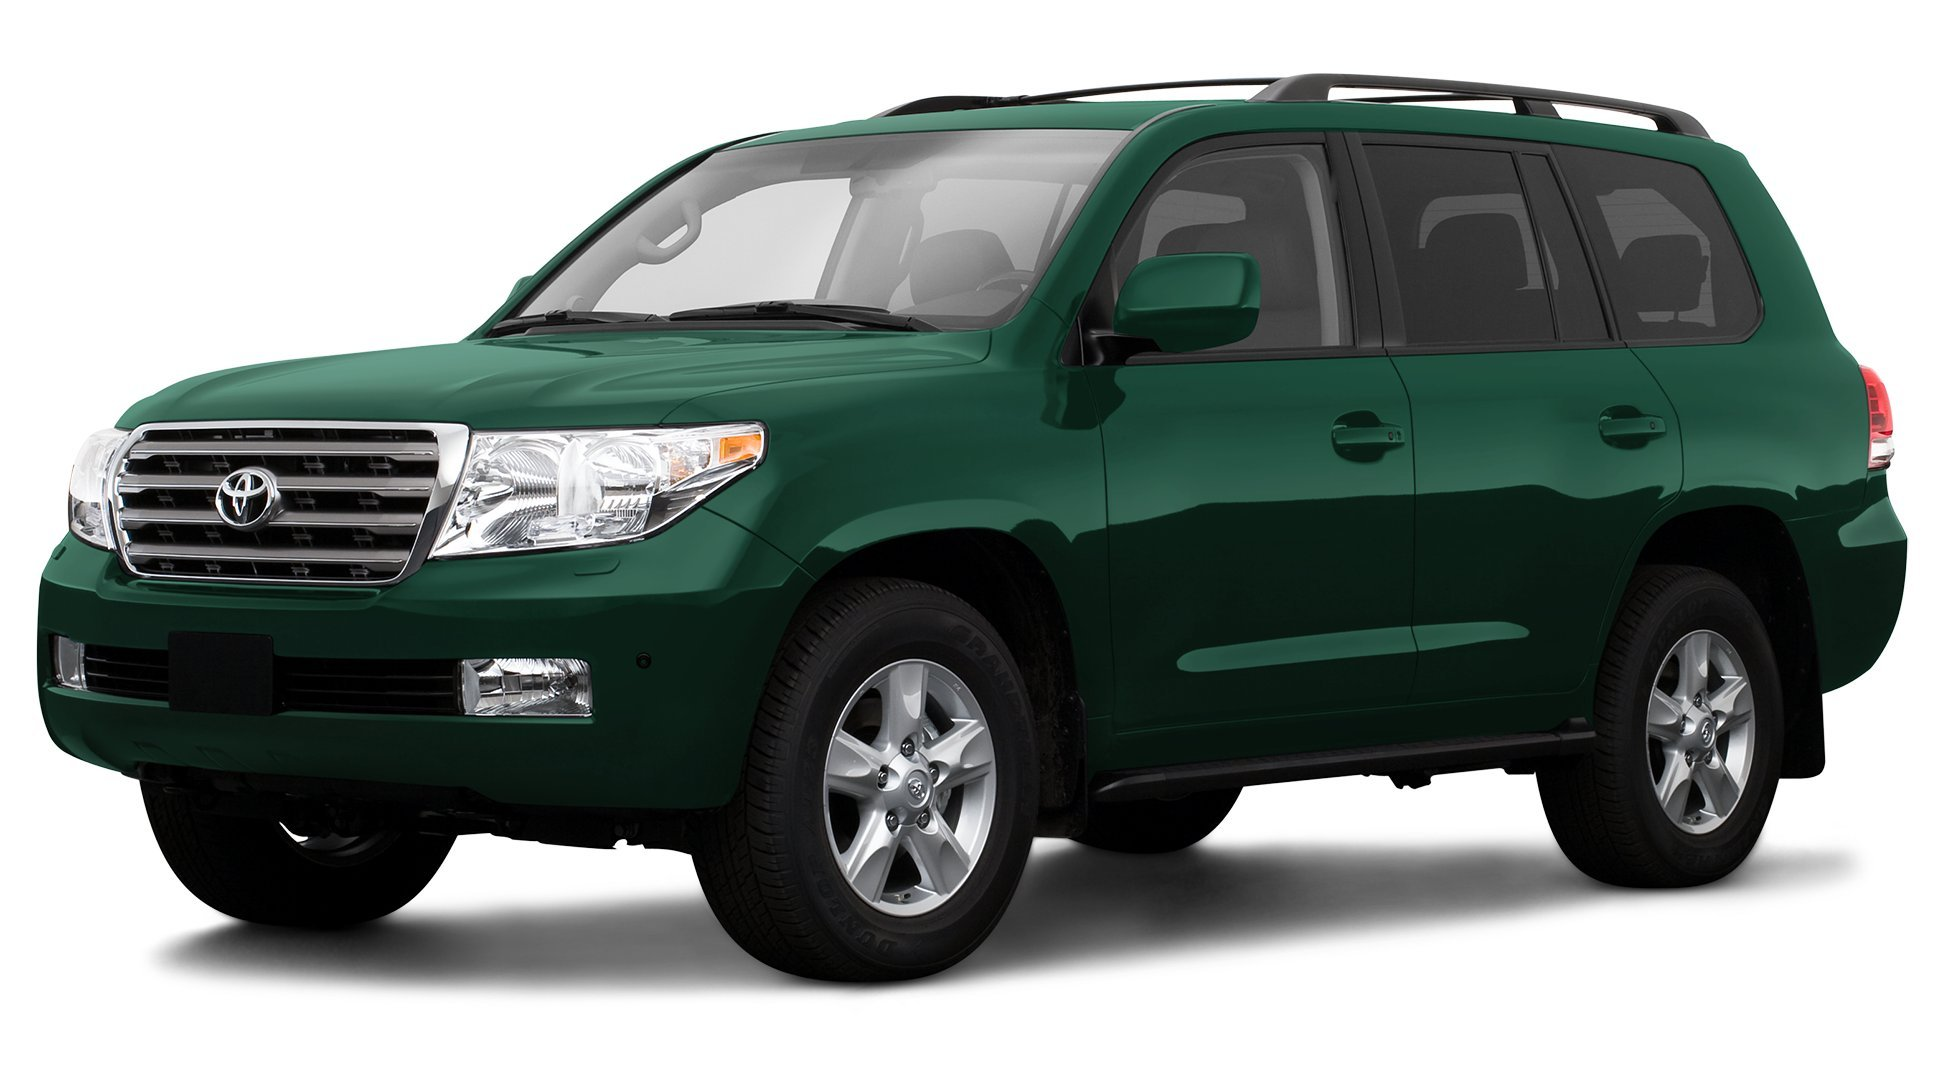 2009 Toyota Land Cruiser Reviews Images And Specs 1960s Options 4 Door Wheel Drive Gs